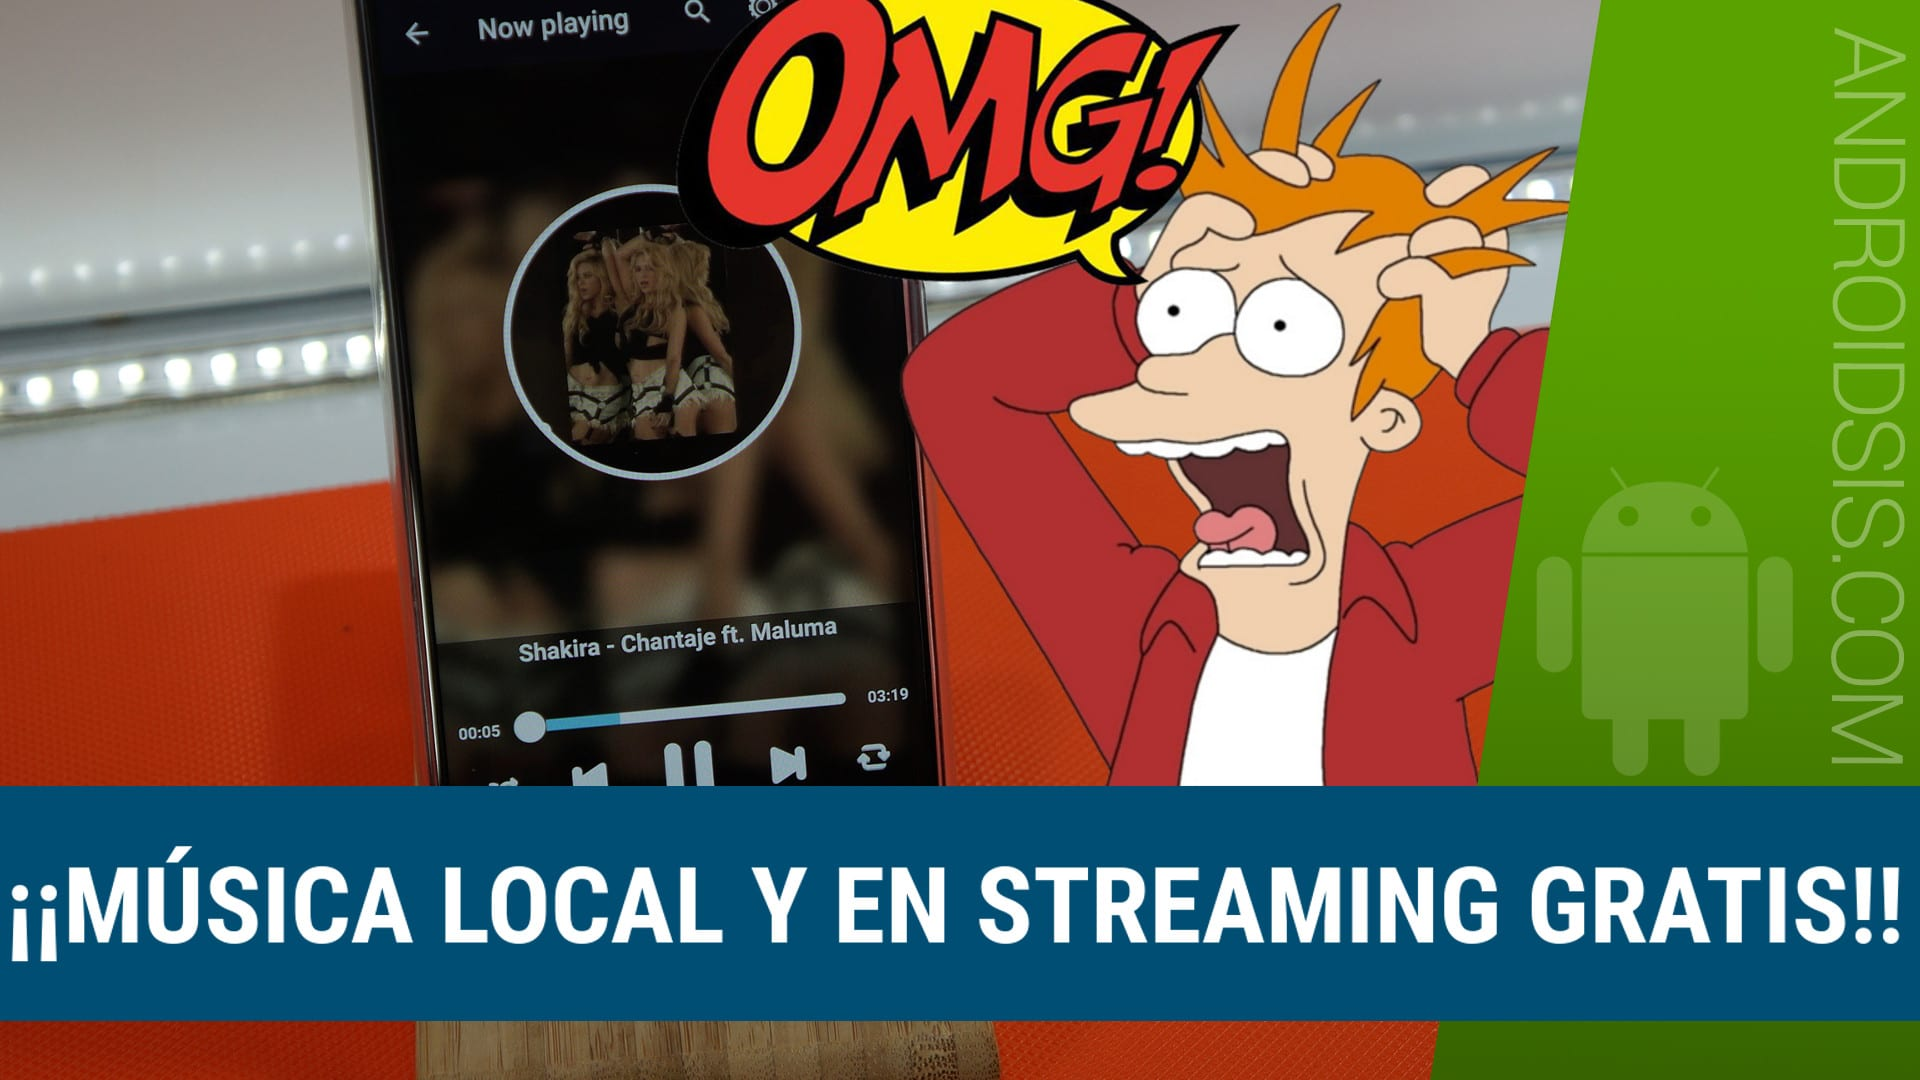 Espectacular reproductor de música local y en streaming totalmente gratuito